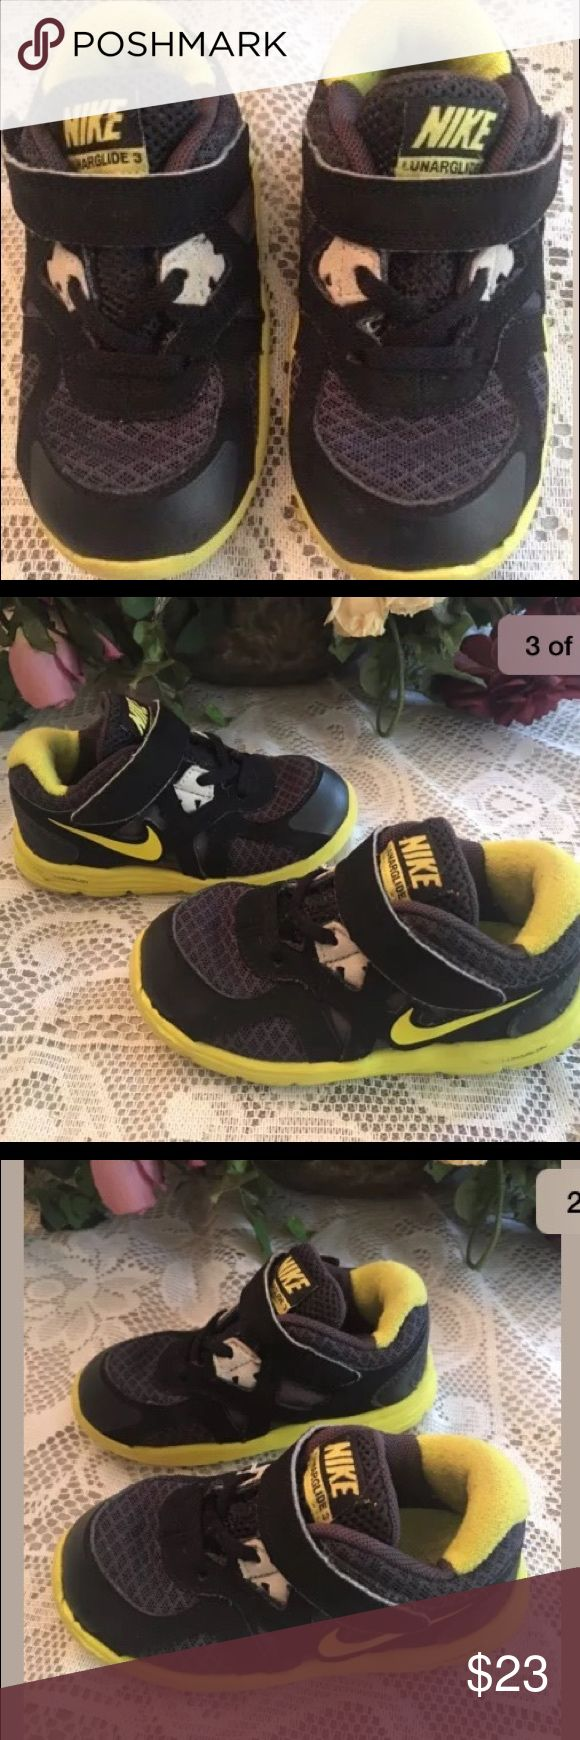 Nike Lunarglide 3 Toddler #sneakers Size 7C A really cute pair of Nike Lunarglide 3 size 7C sneakers in great condition.  Please see photos for details. Nike Shoes Sneakers